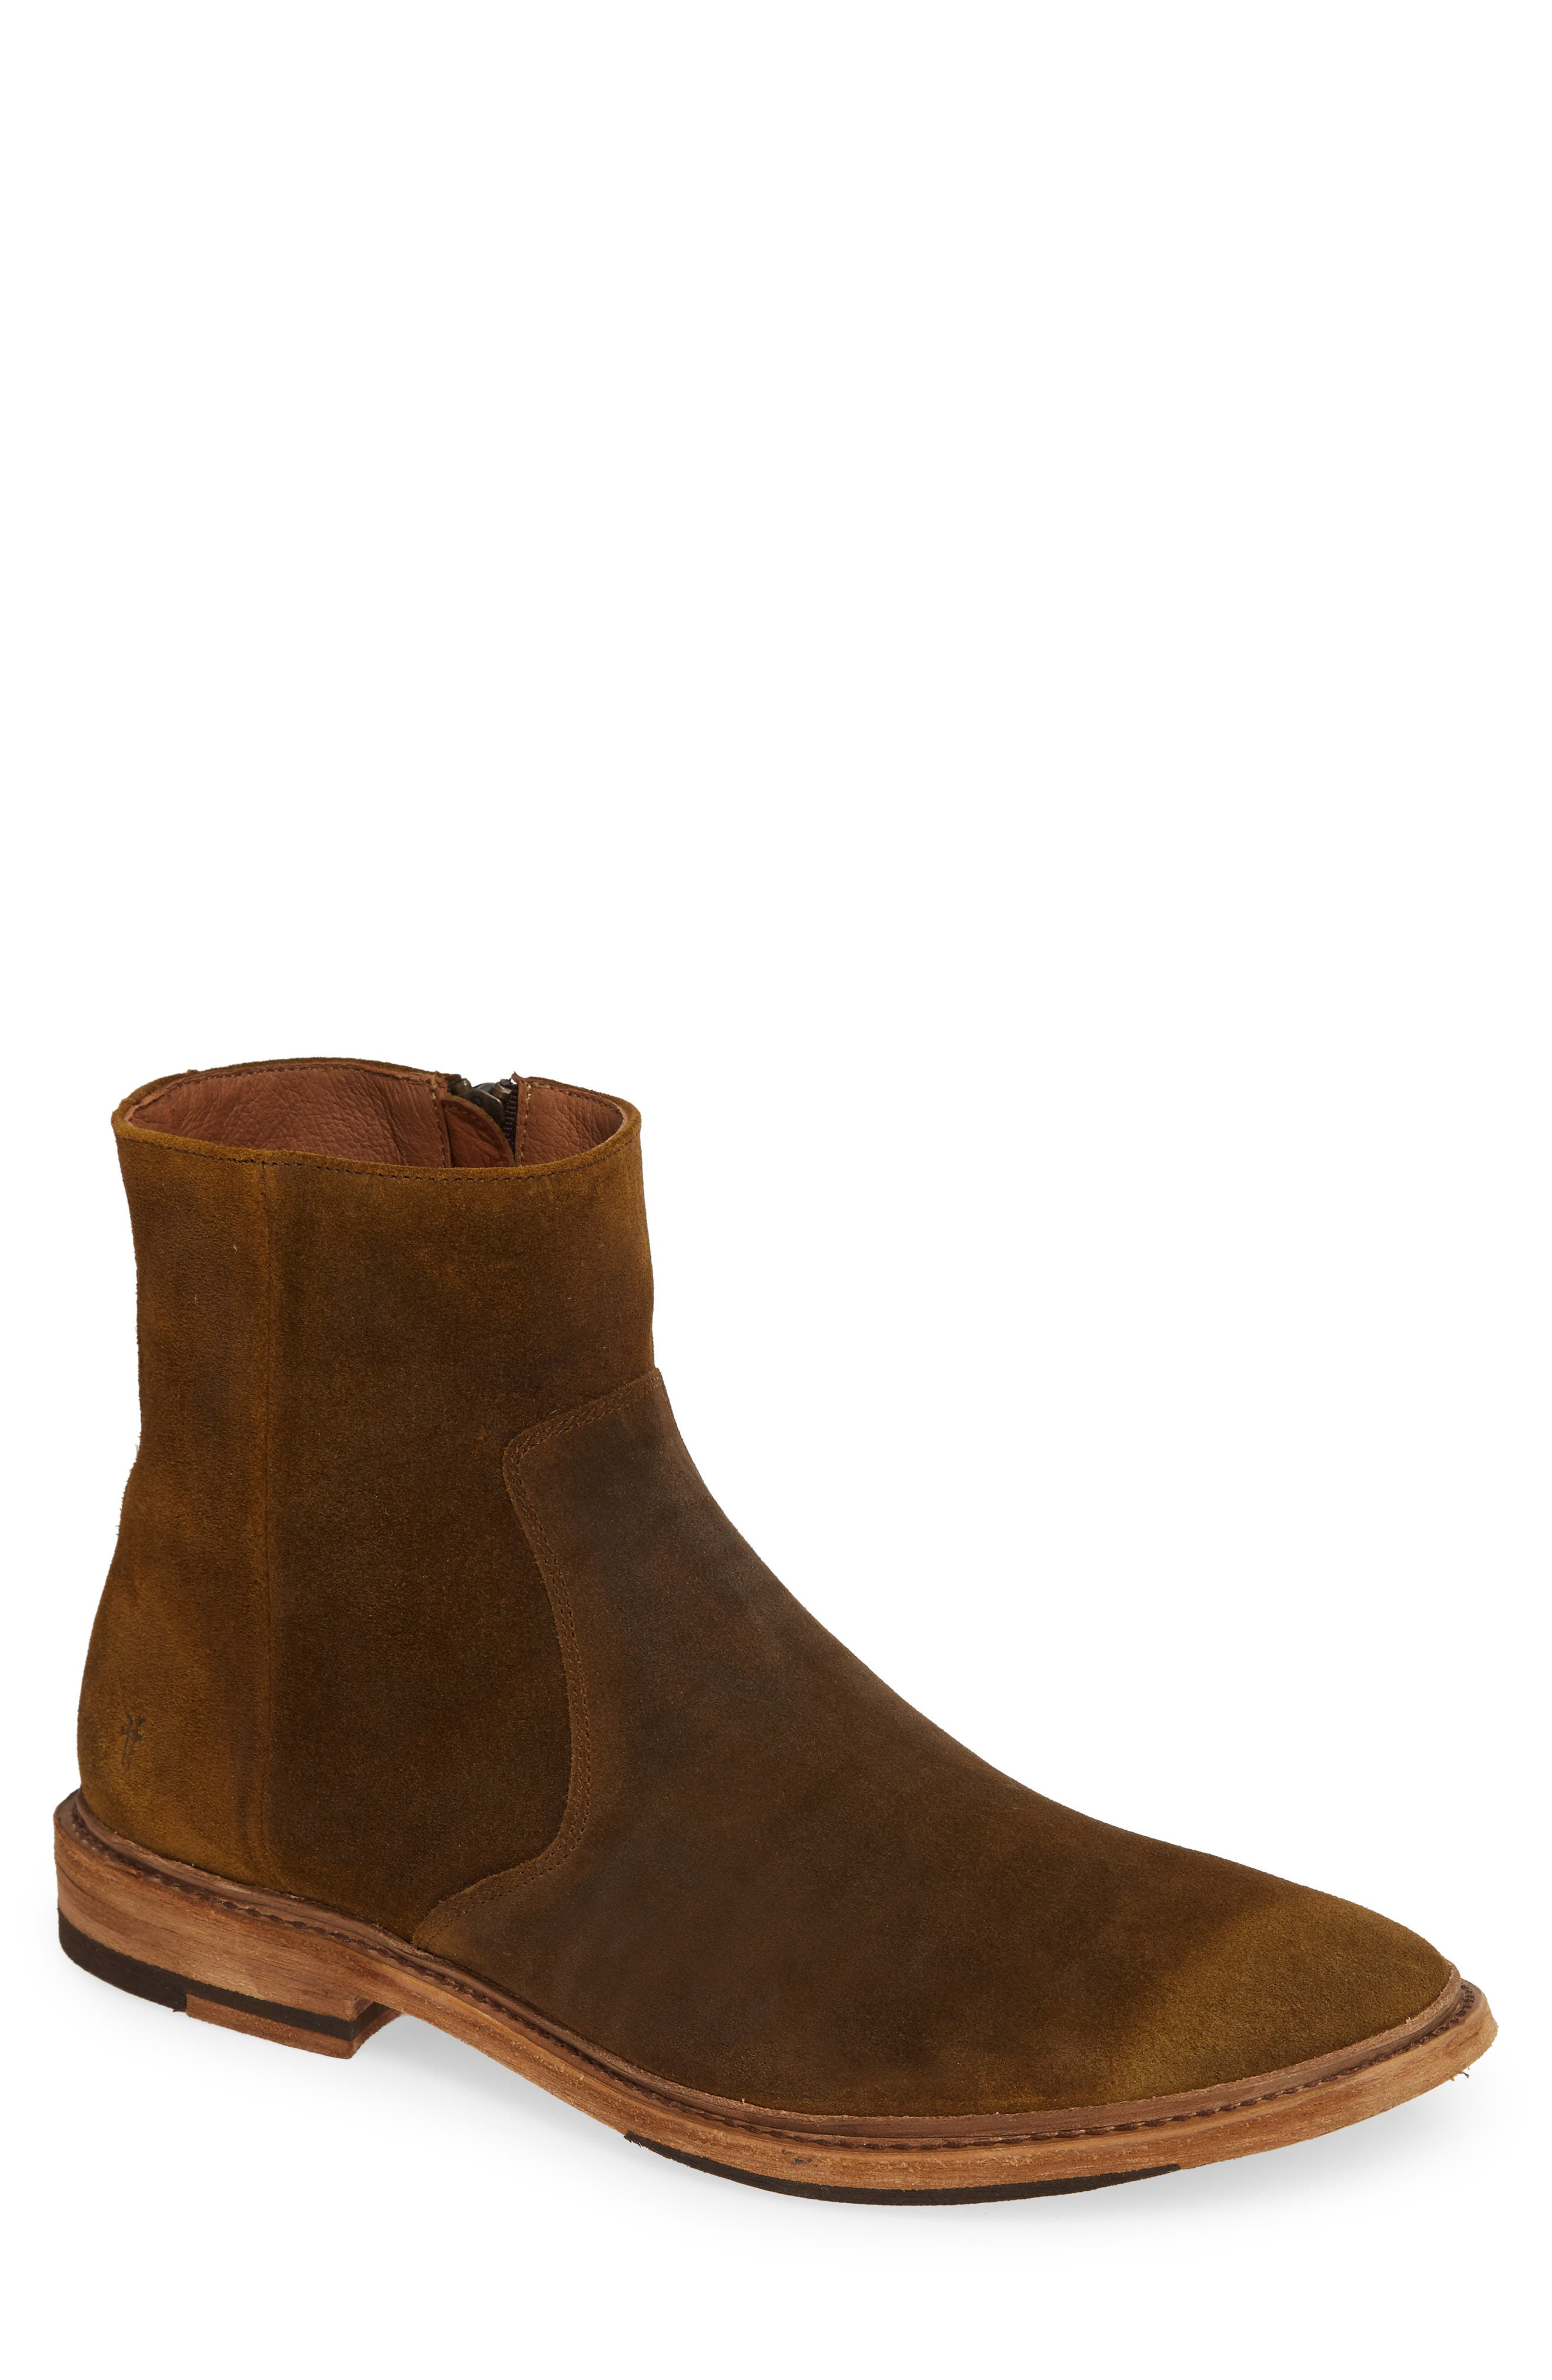 Paul Zip Boot,                             Main thumbnail 1, color,                             TAN SUEDE